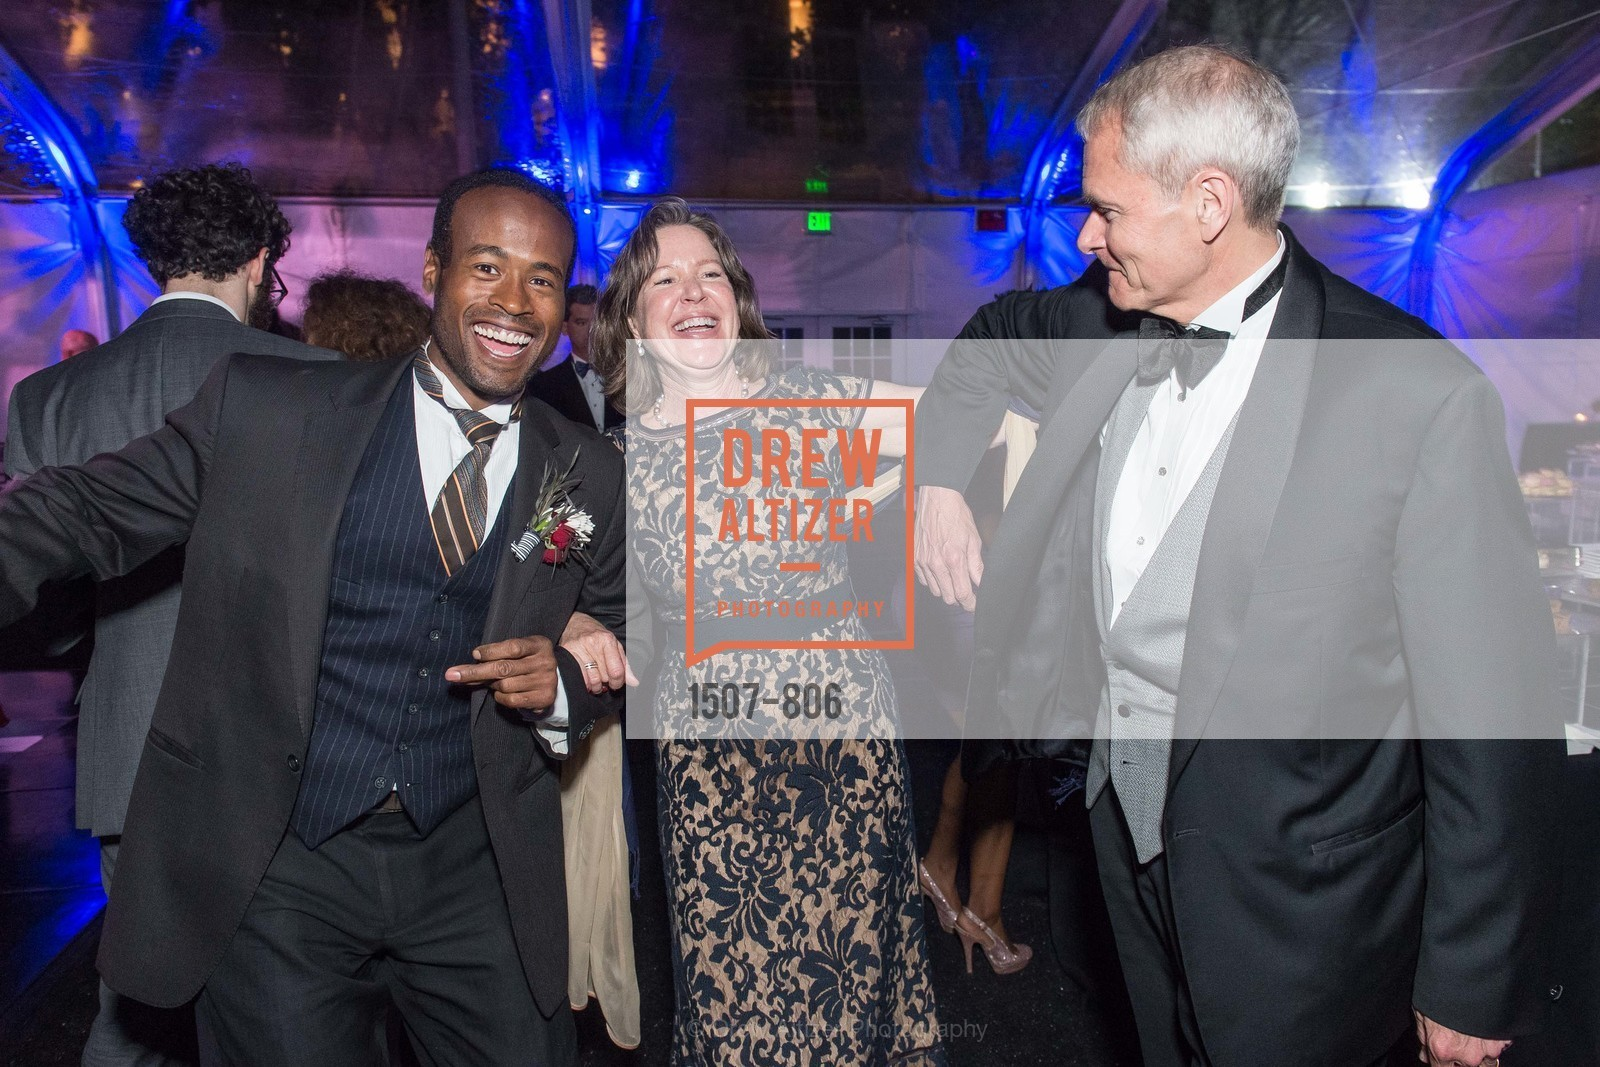 Extras, A.C.T. Gala Come Get Stranded, April 25th, 2015, Photo,Drew Altizer, Drew Altizer Photography, full-service agency, private events, San Francisco photographer, photographer california